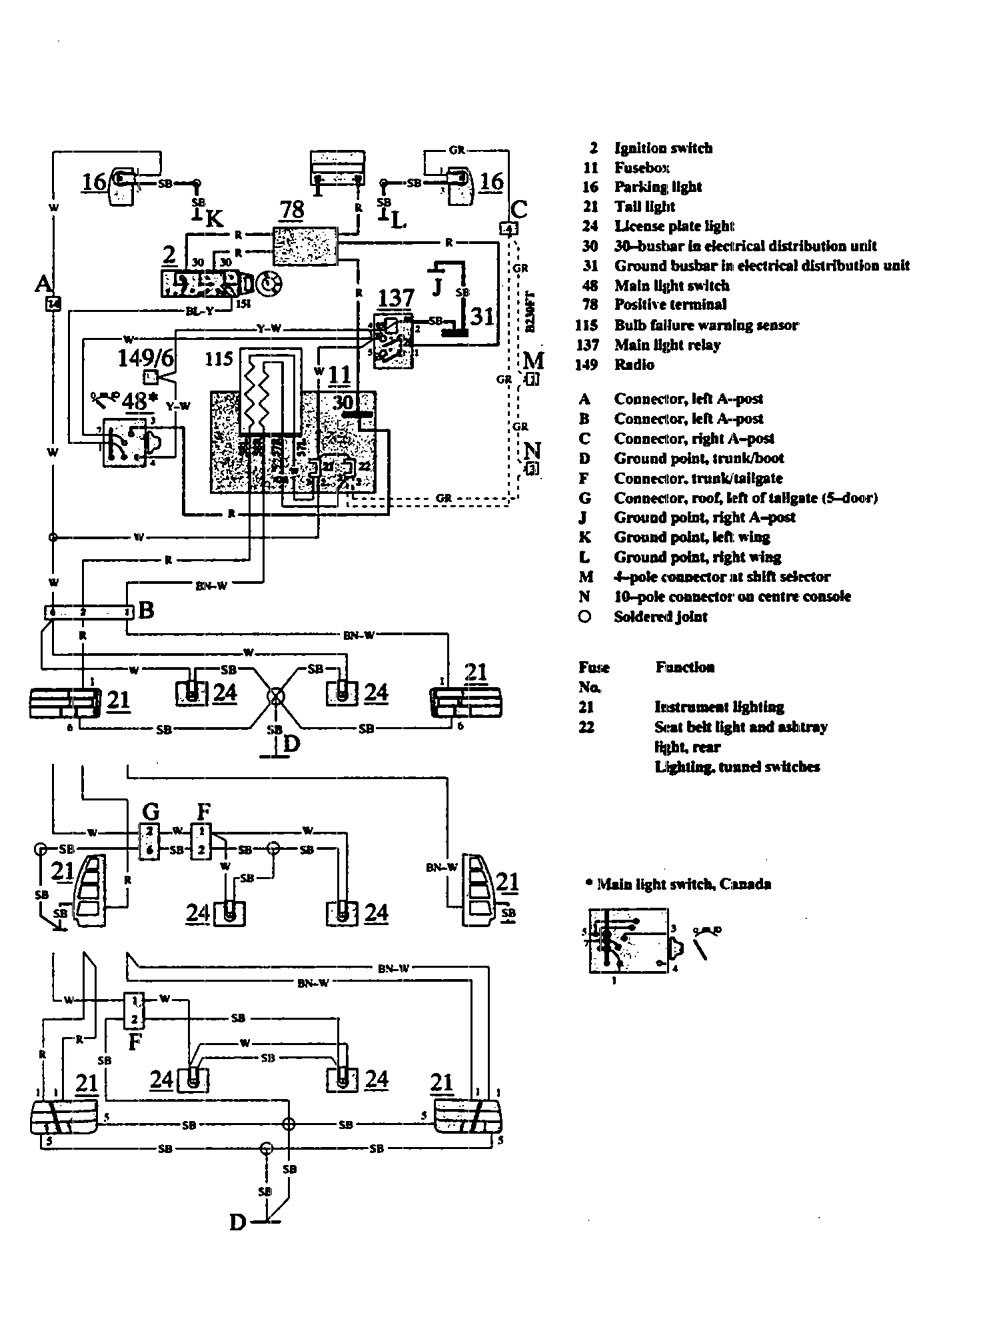 Volvo S40 Fuse Panel Diagram. Volvo. Auto Fuse Box Diagram